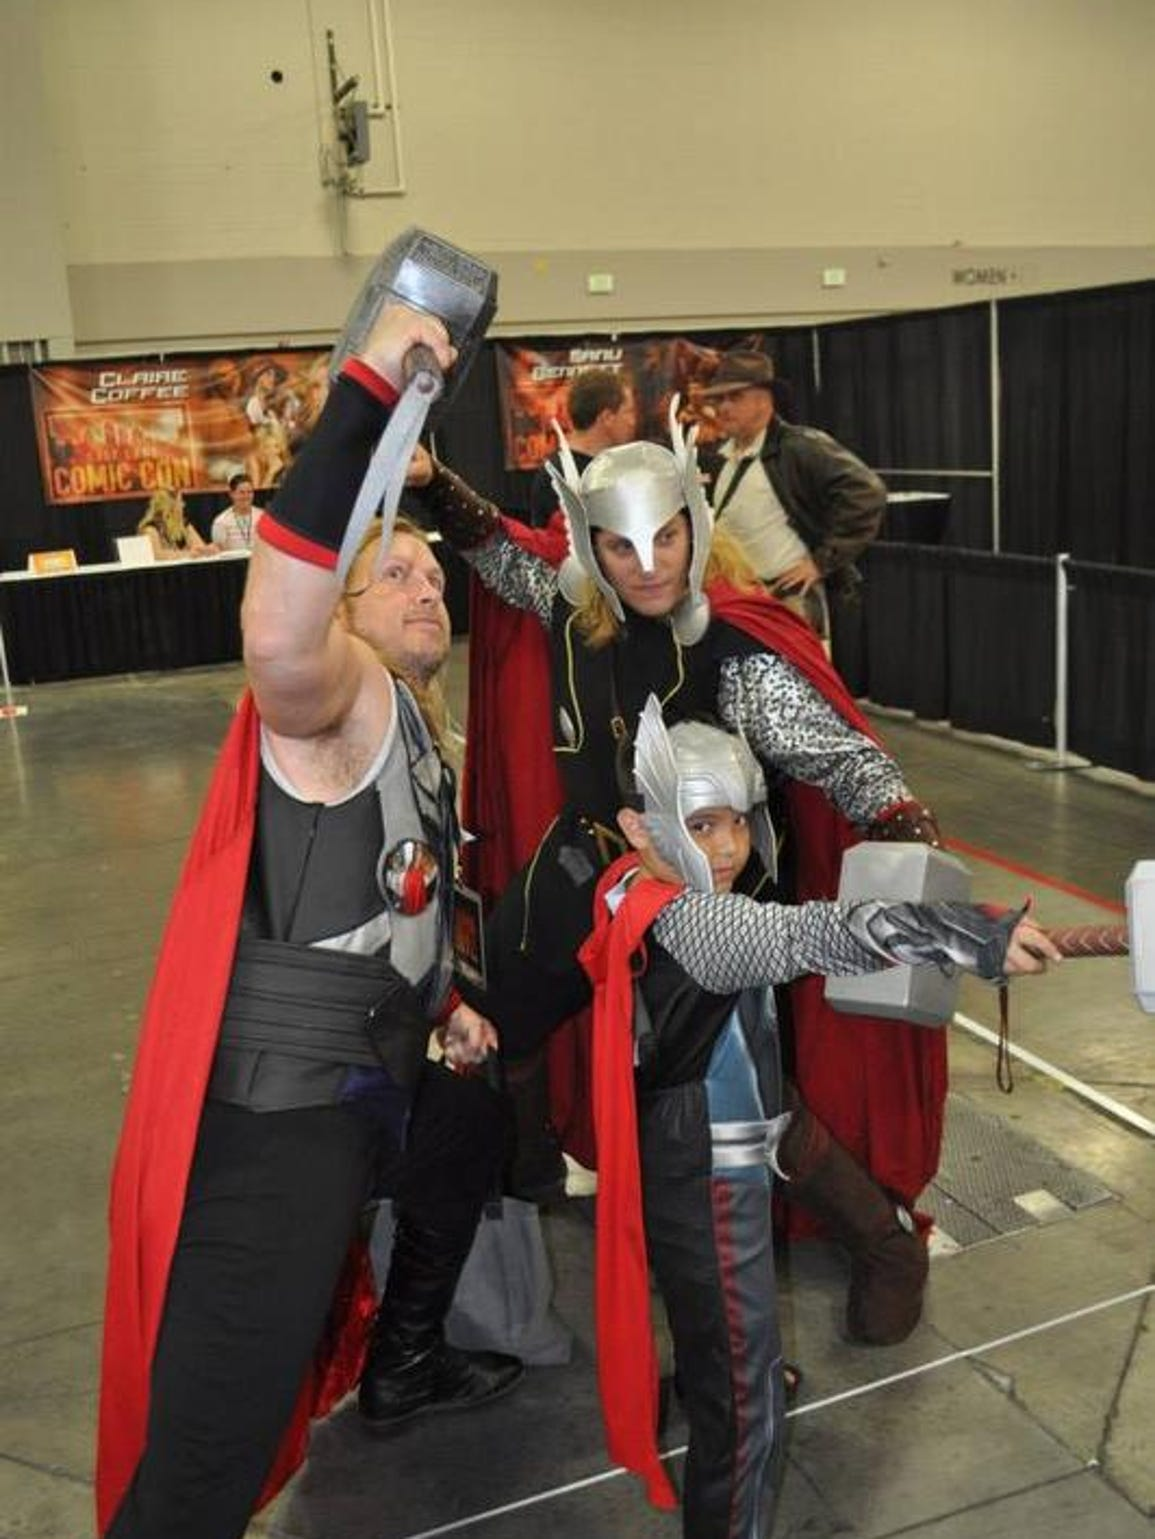 A group of guys dressed as Thor pose at the Salt Lake